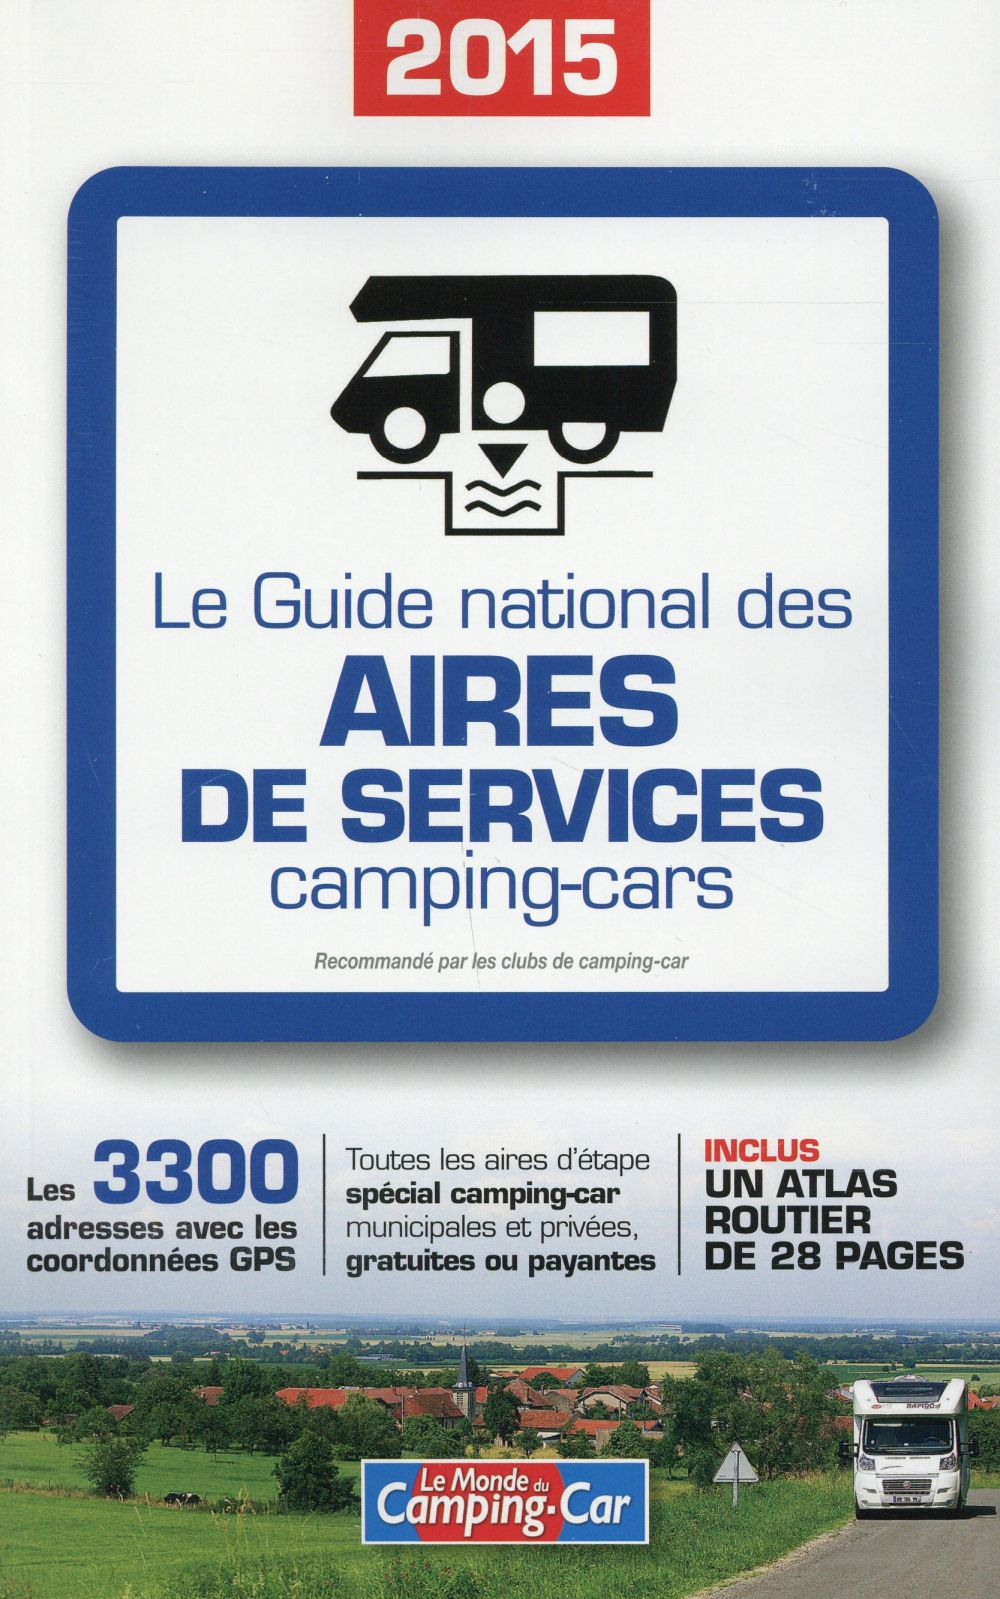 Le guide national des aires de services 2015